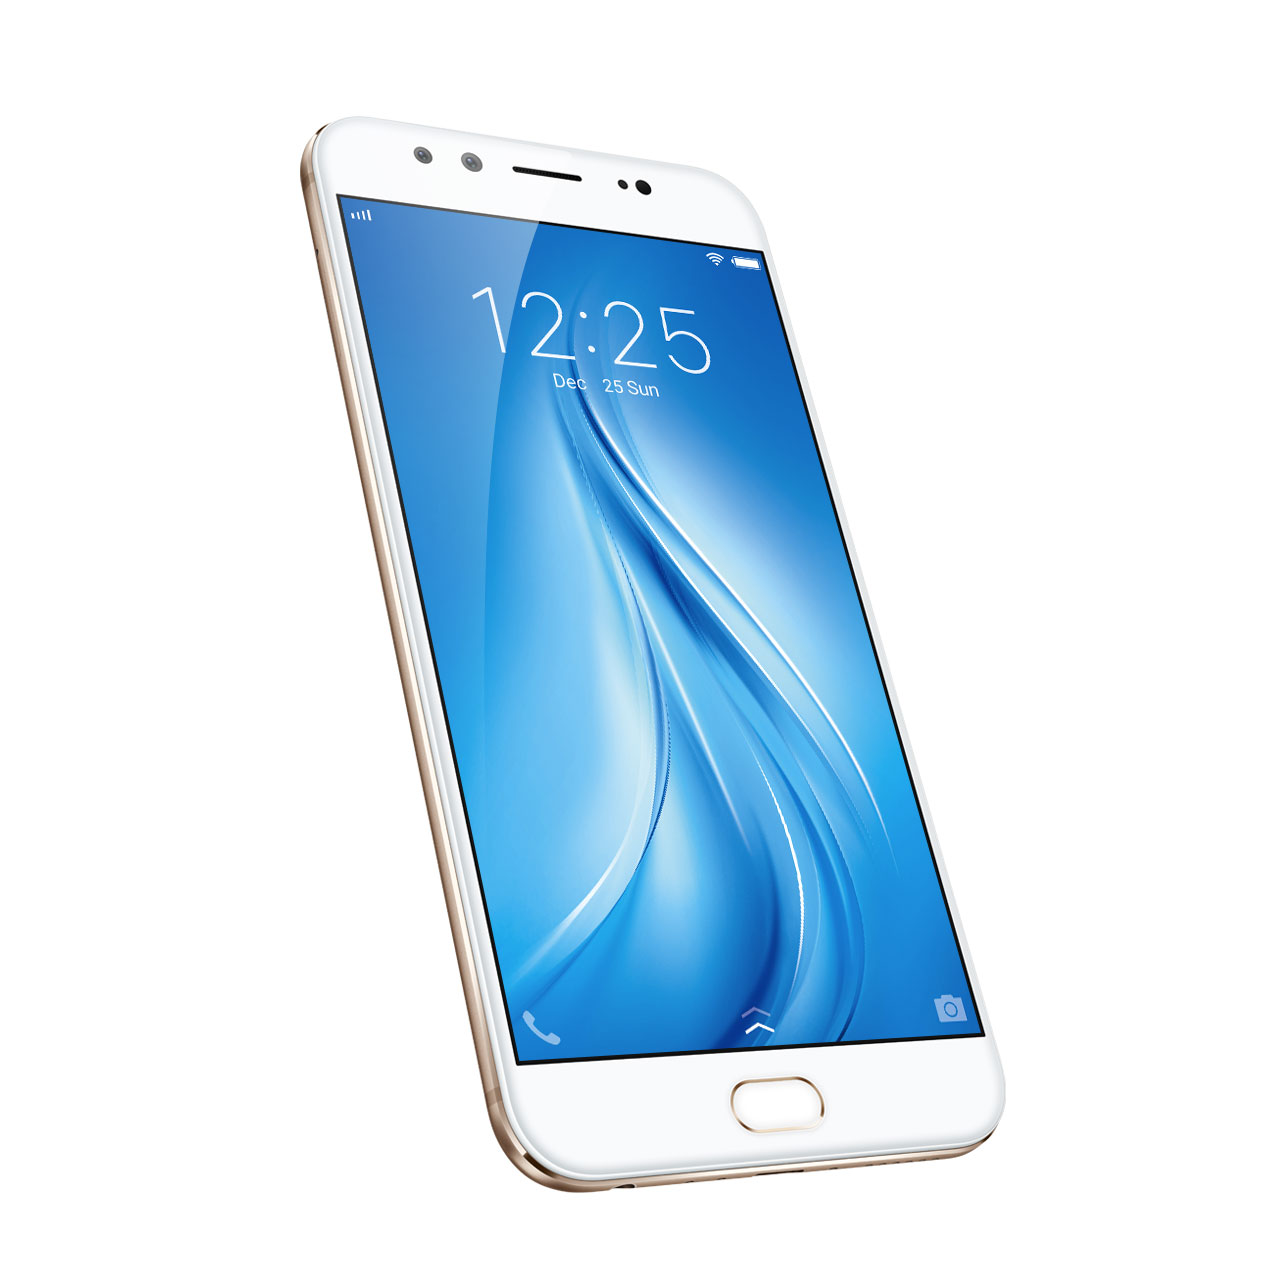 Vivo V5 Plus Photos Images And Wallpapers Mouthshut Com